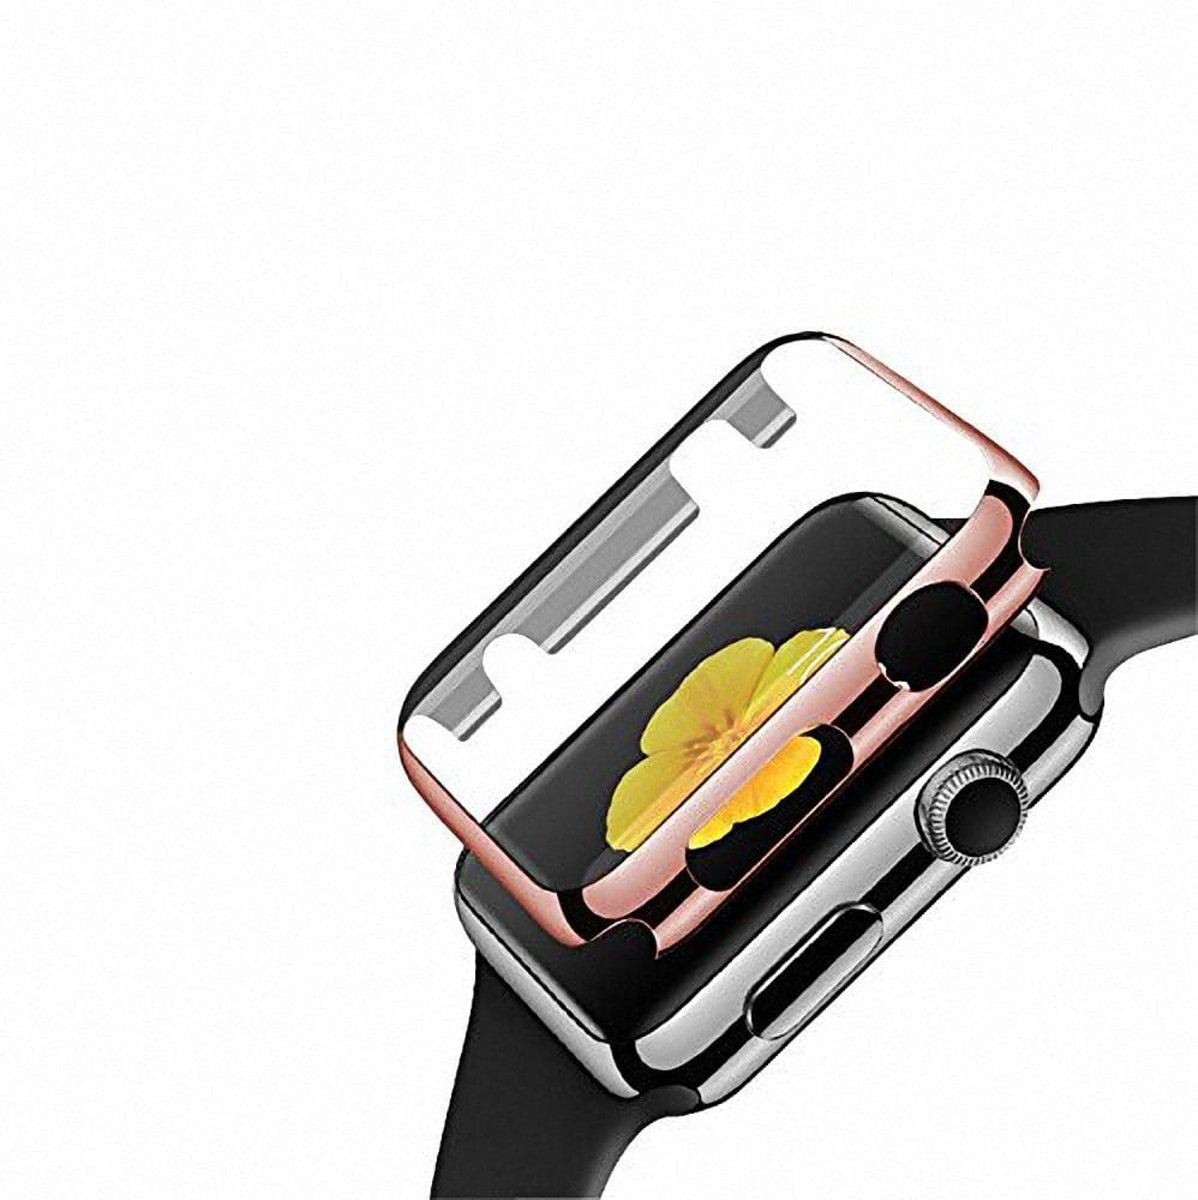 42mm Case Cover Screen Protector rose goud 4H Protected Knocks Watch Cases voor Apple watch 3 Watchbands-shop.nl kopen